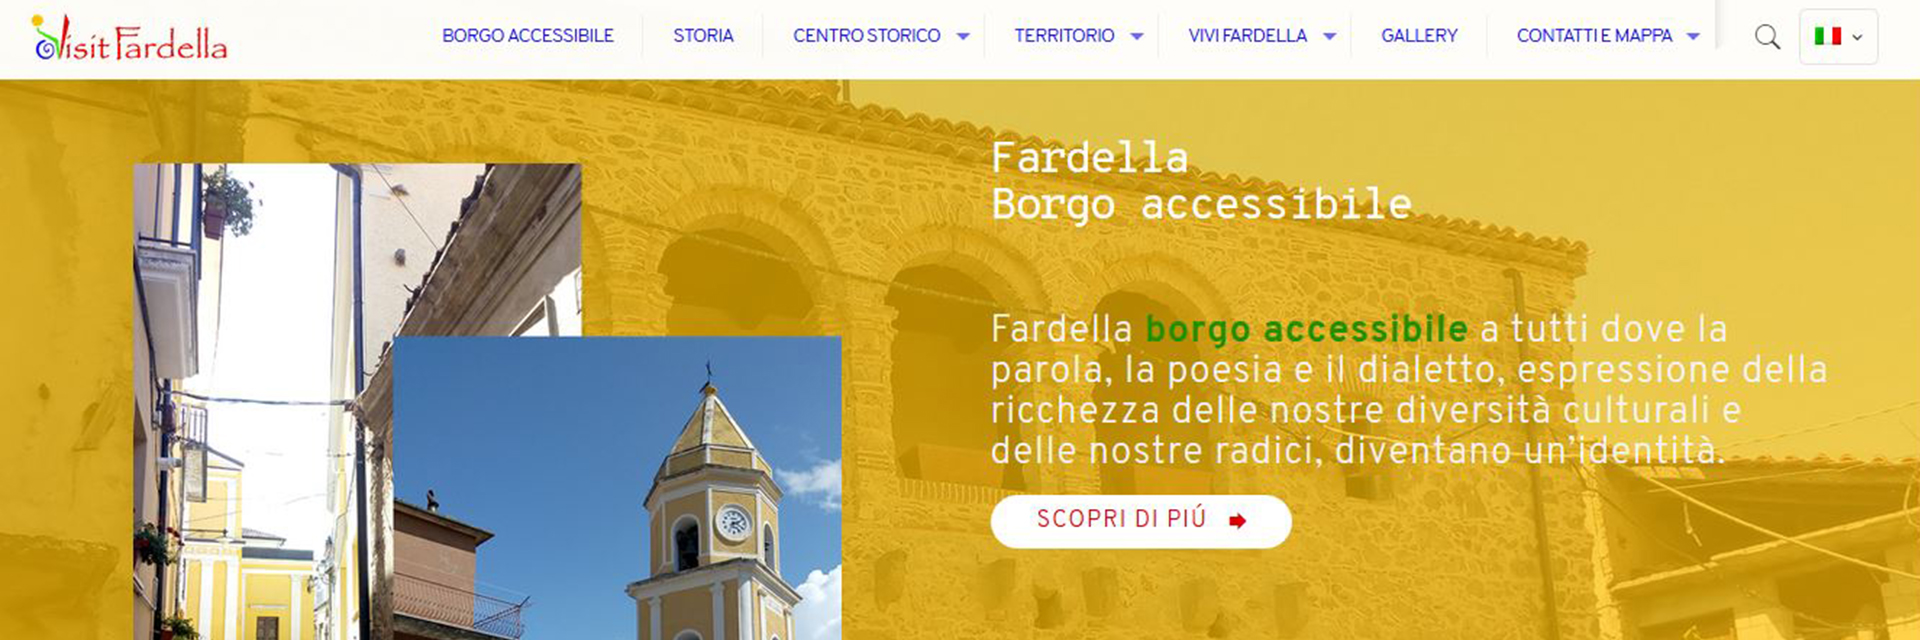 screen-visit-fardella-2